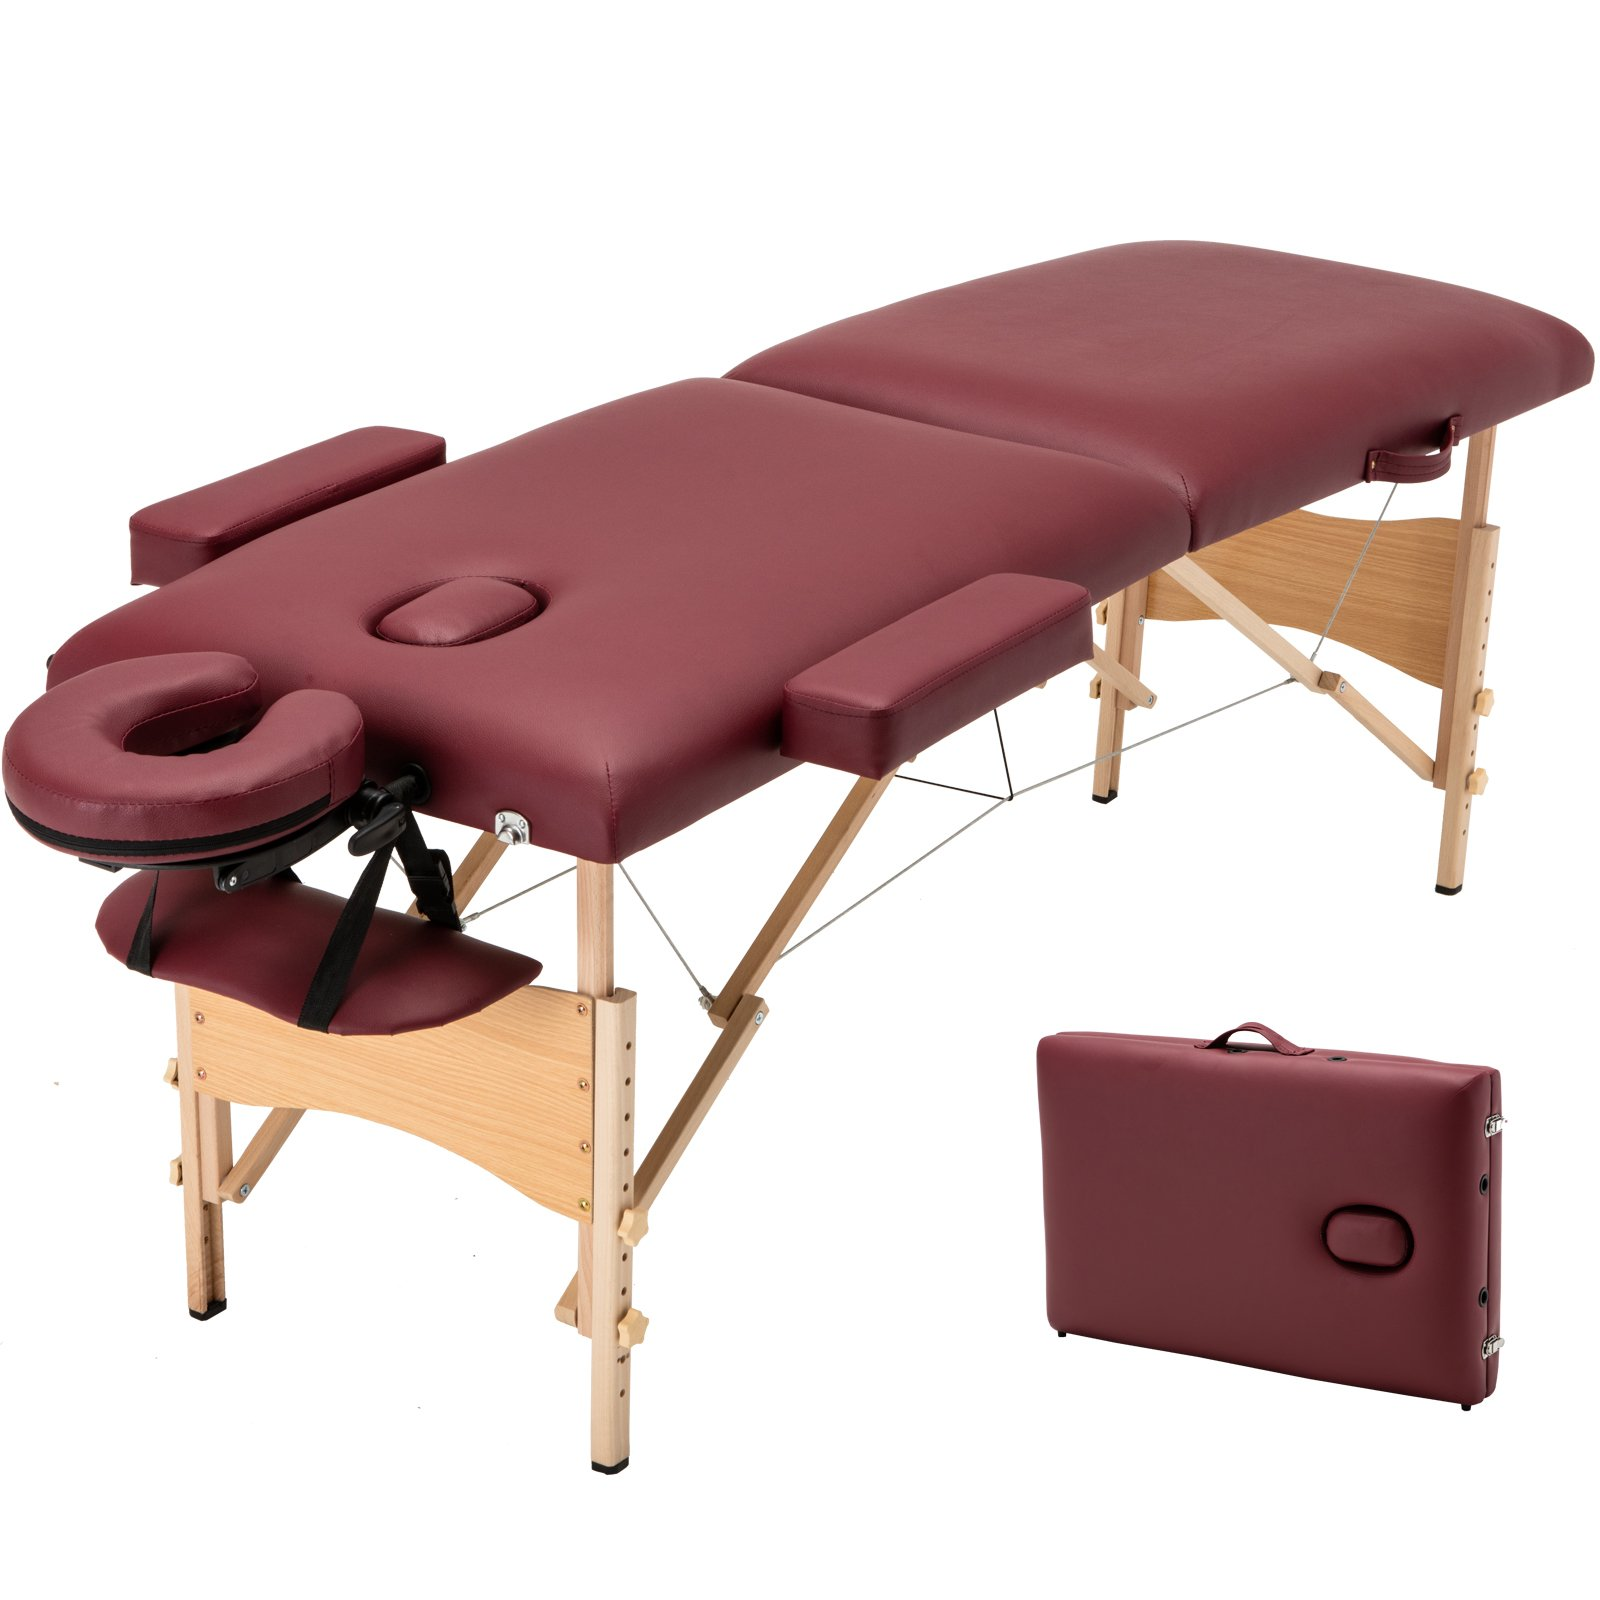 Uenjoy Folding Massage Table 84'' Professional Massage Bed With Carrying Bag 2 Fold,Bronze